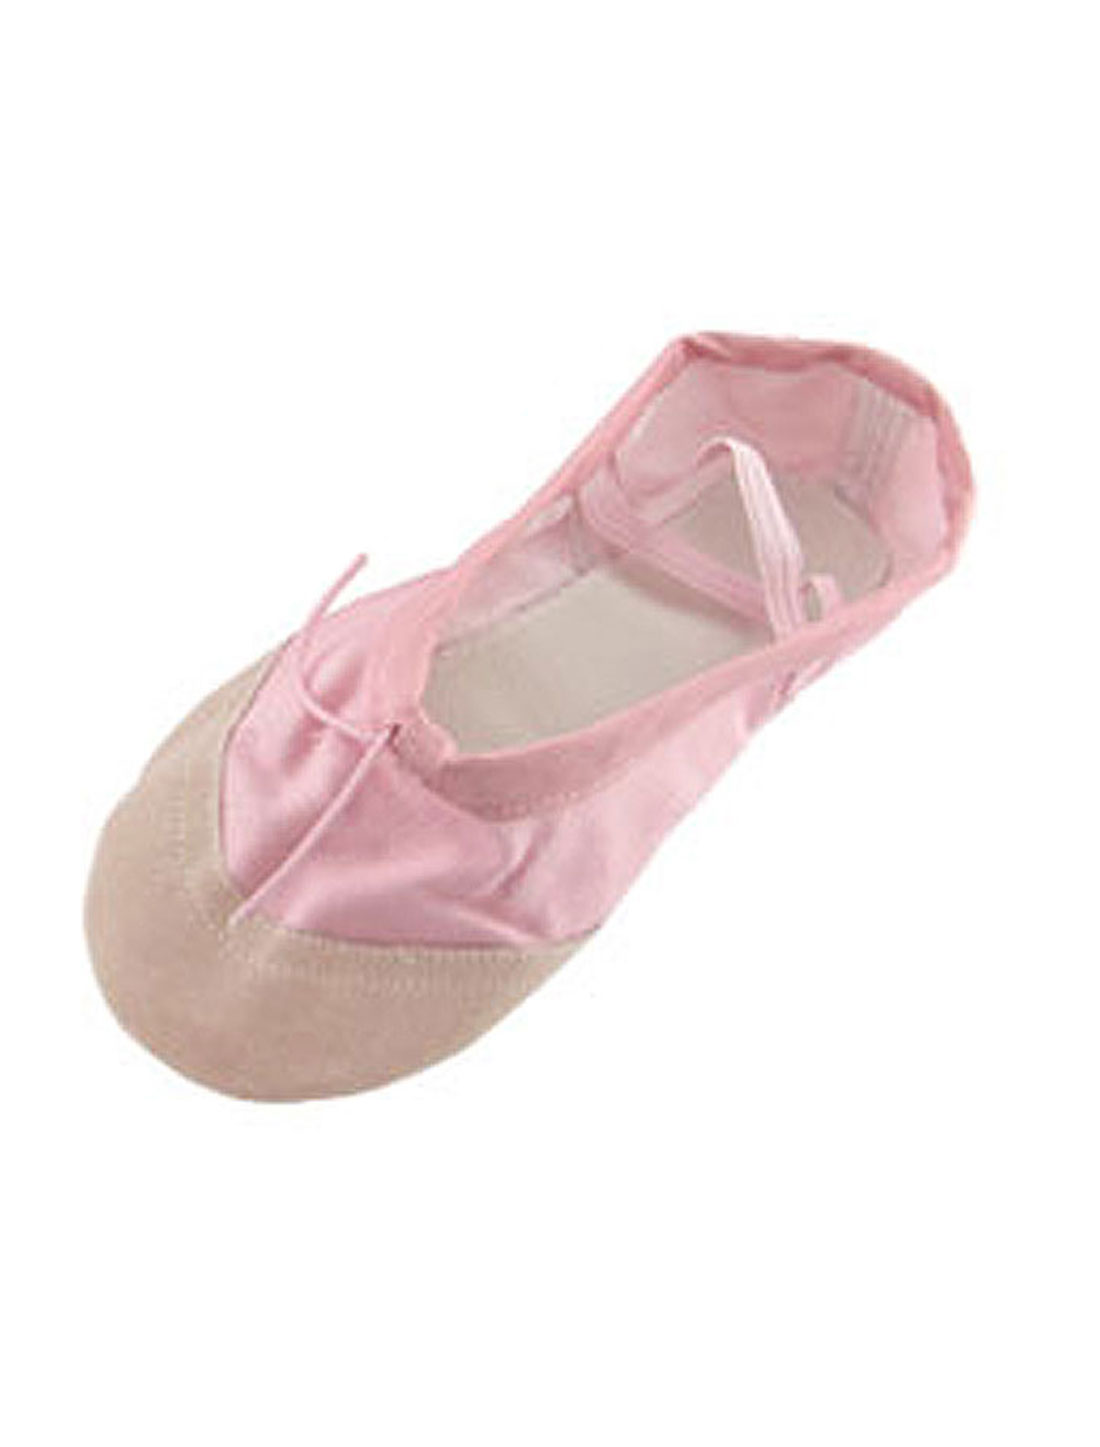 Girls-US-Sz-2-5-Pink-Elastic-Band-Flat-Ballet-Dance-Shoes